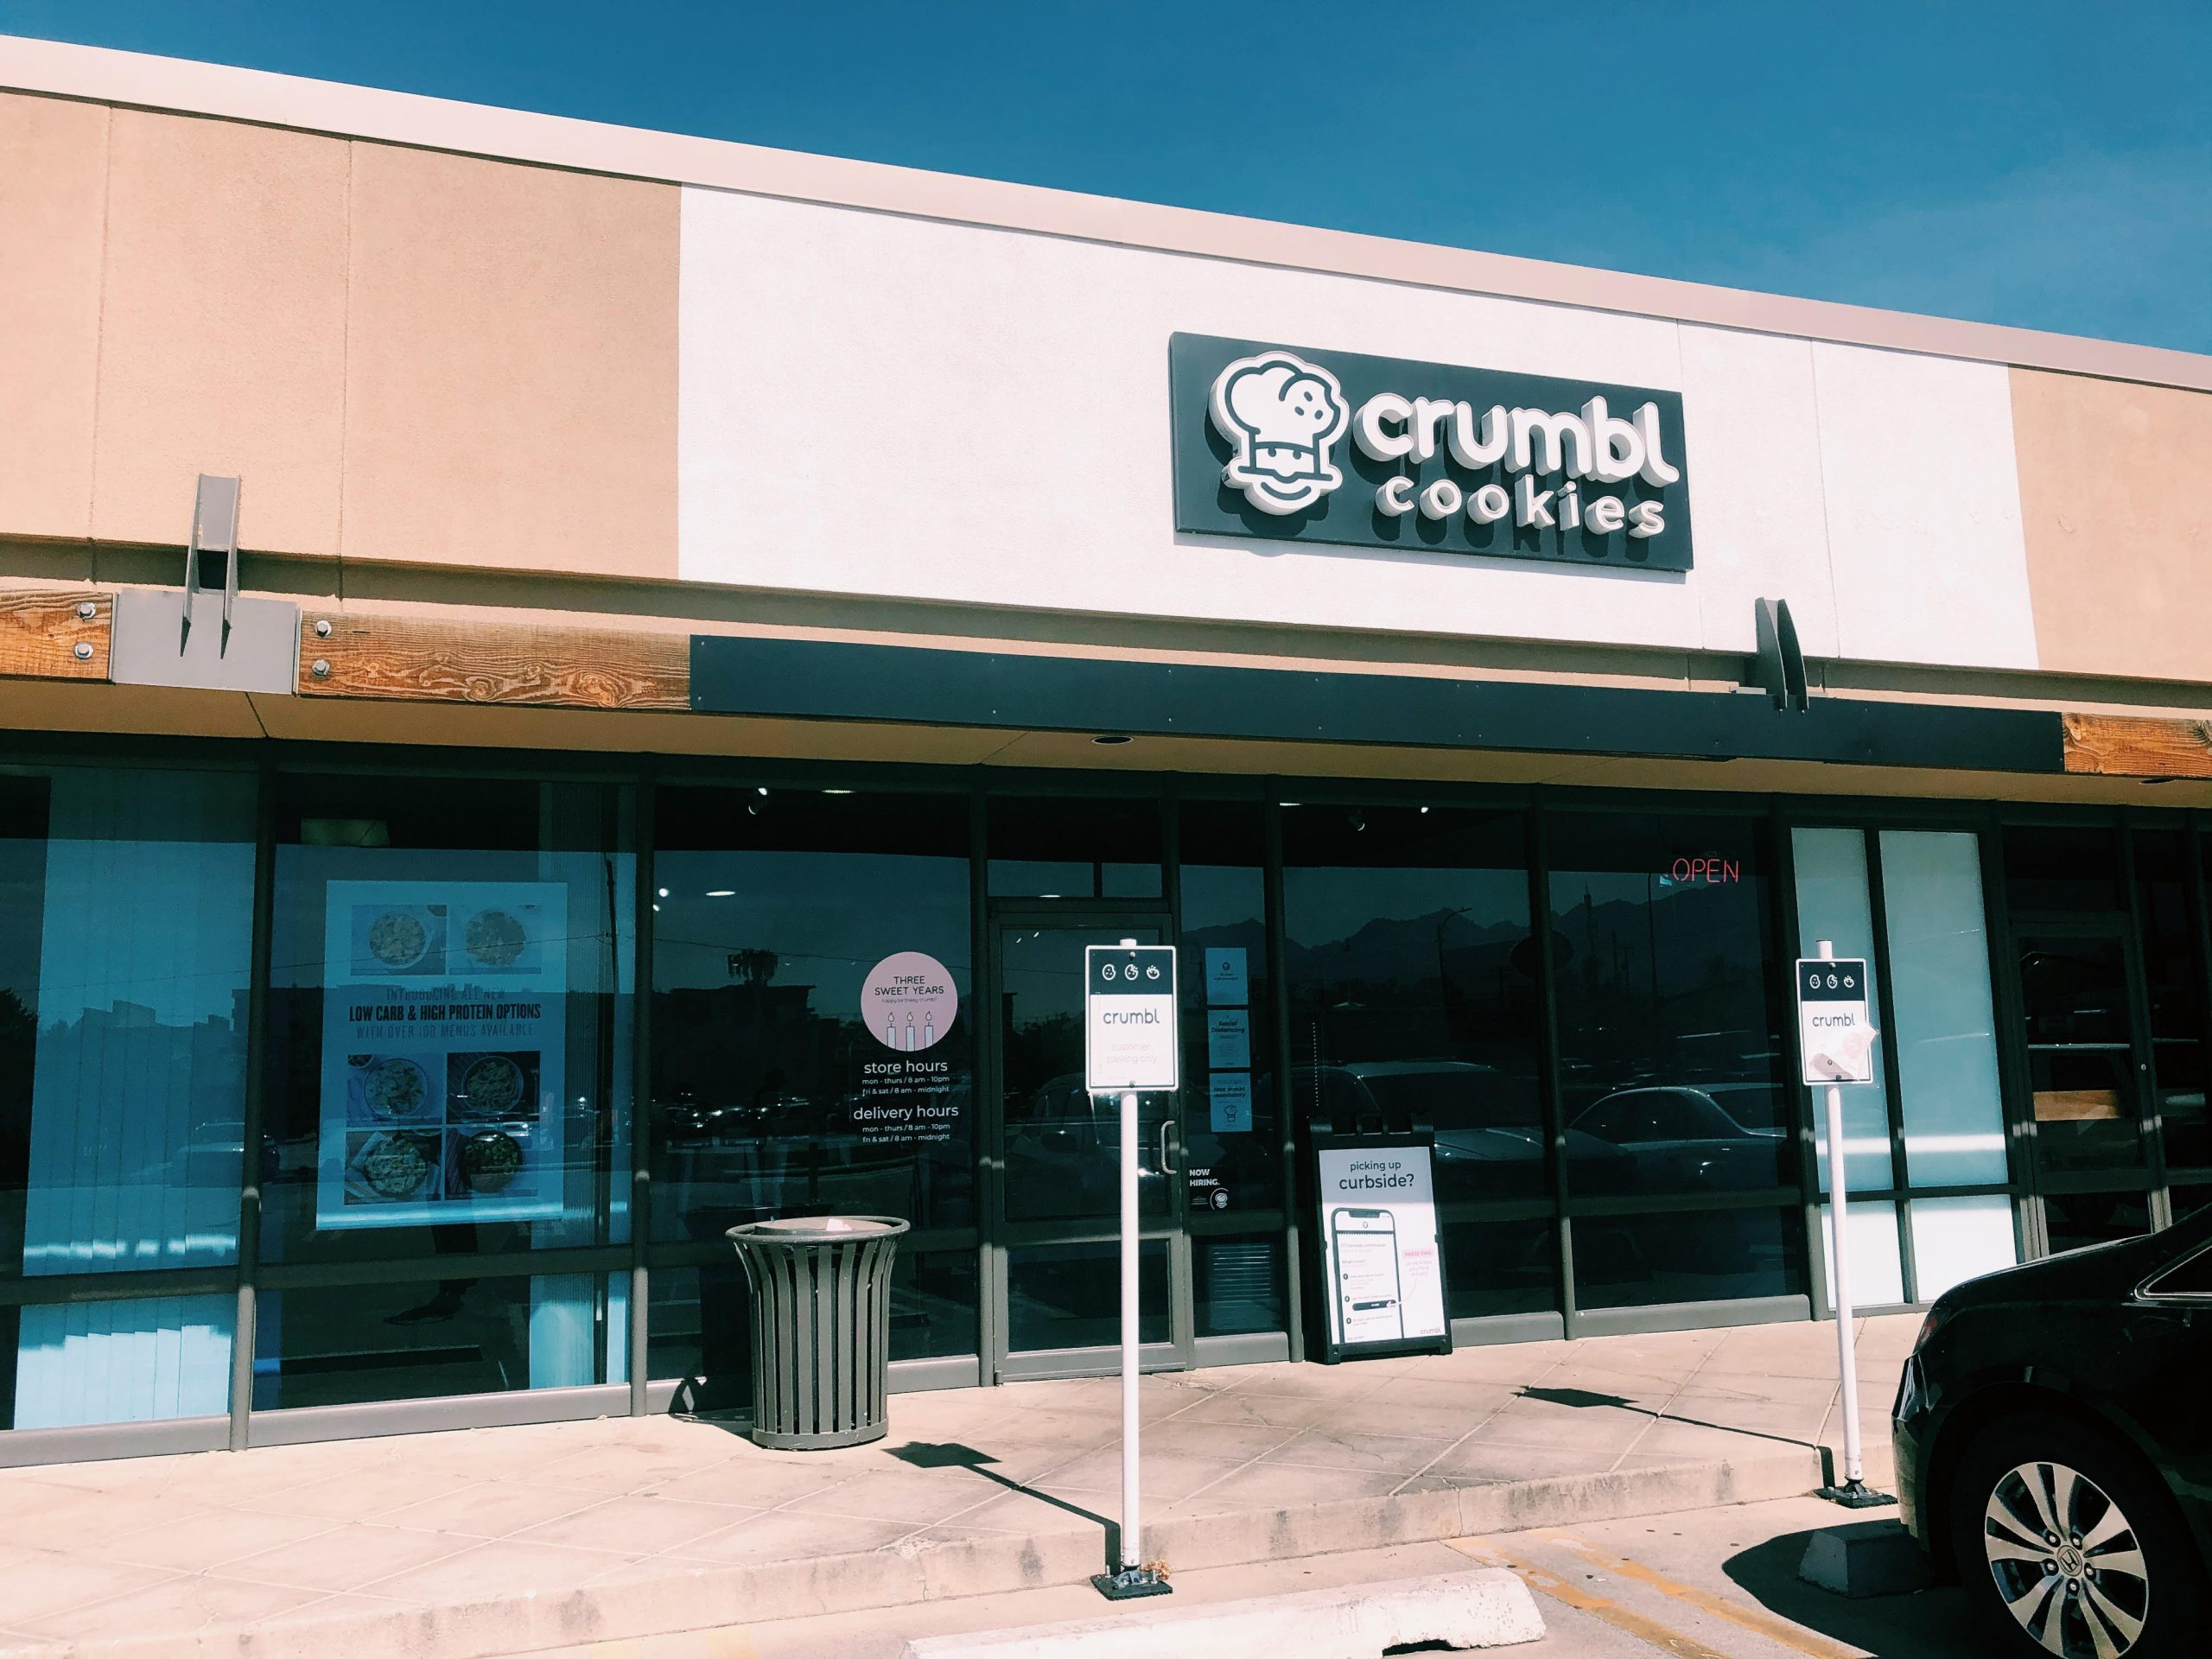 This is Crumbl's storefront in Salt Lake